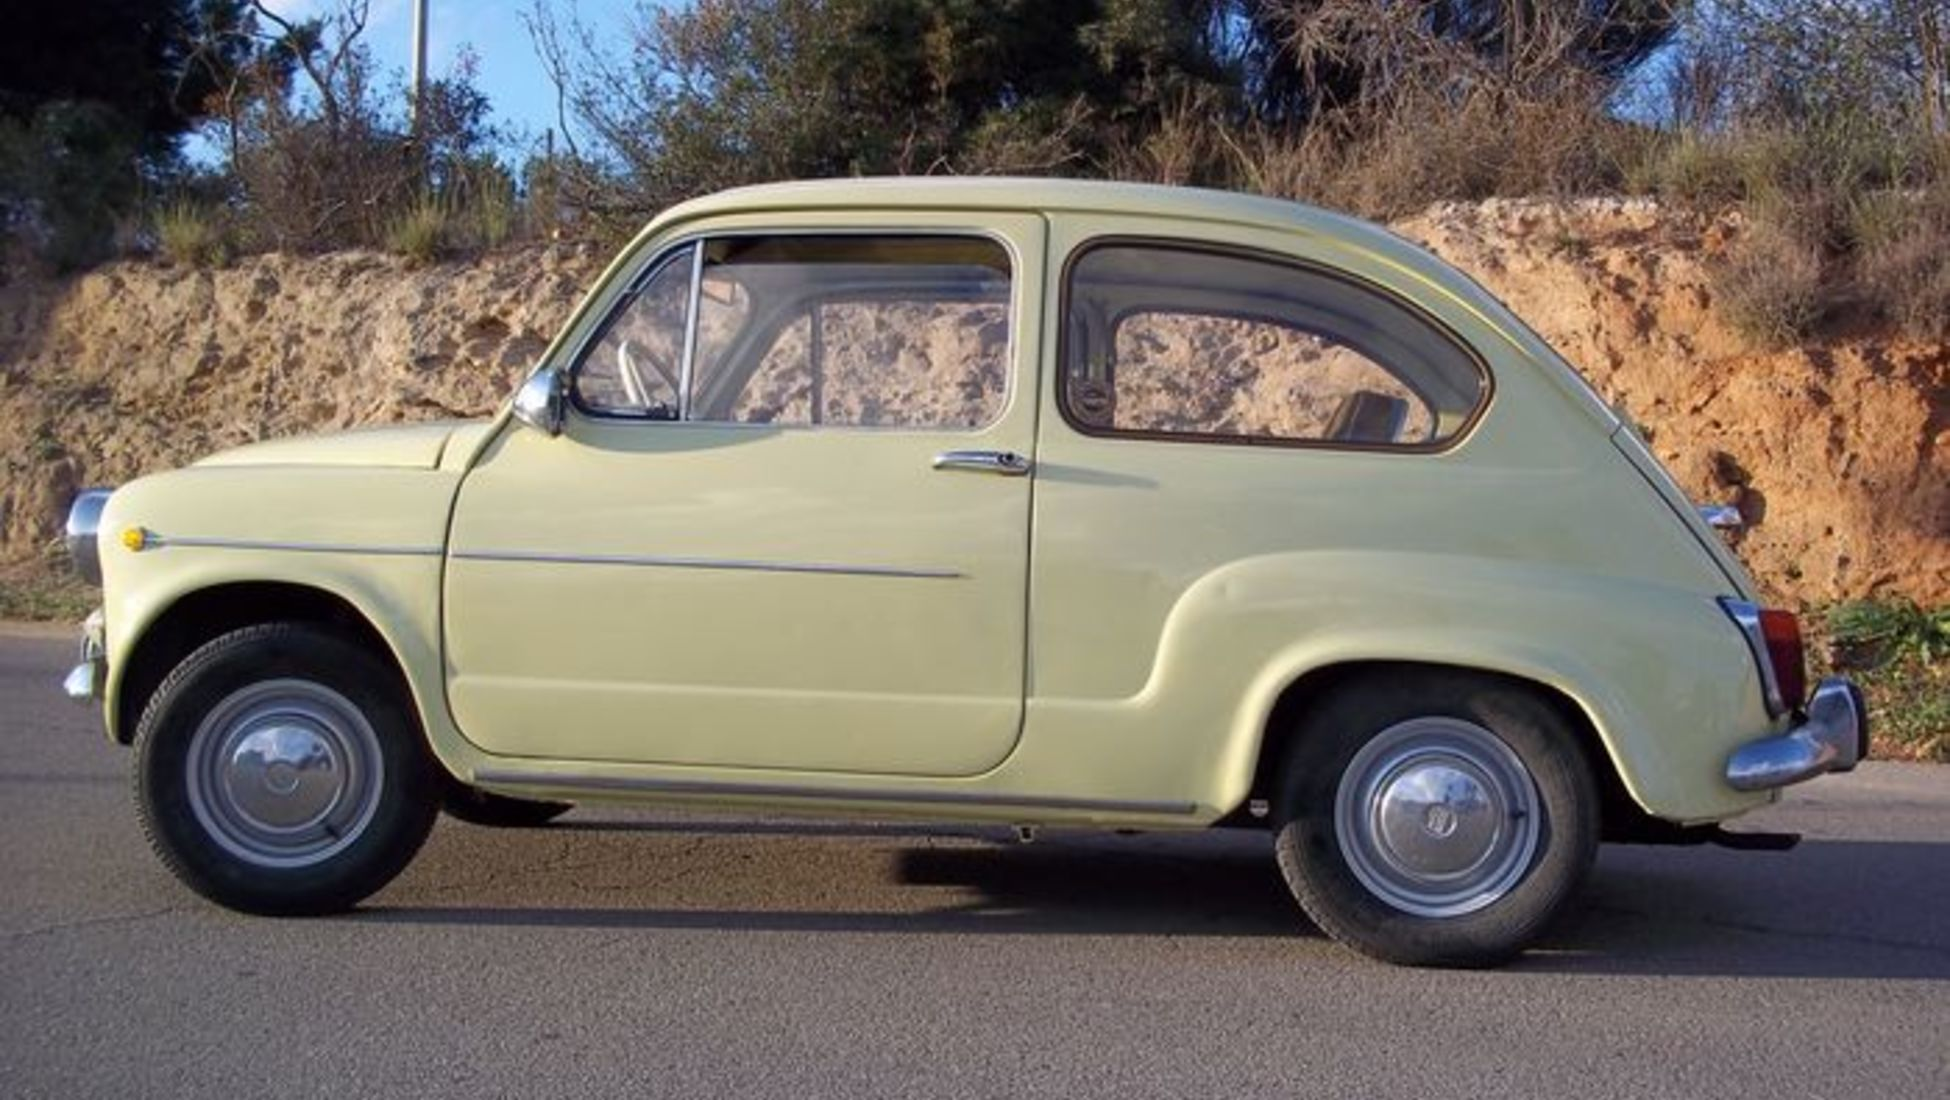 10 Best Spanish Classic Cars Created in Spain - Catawiki